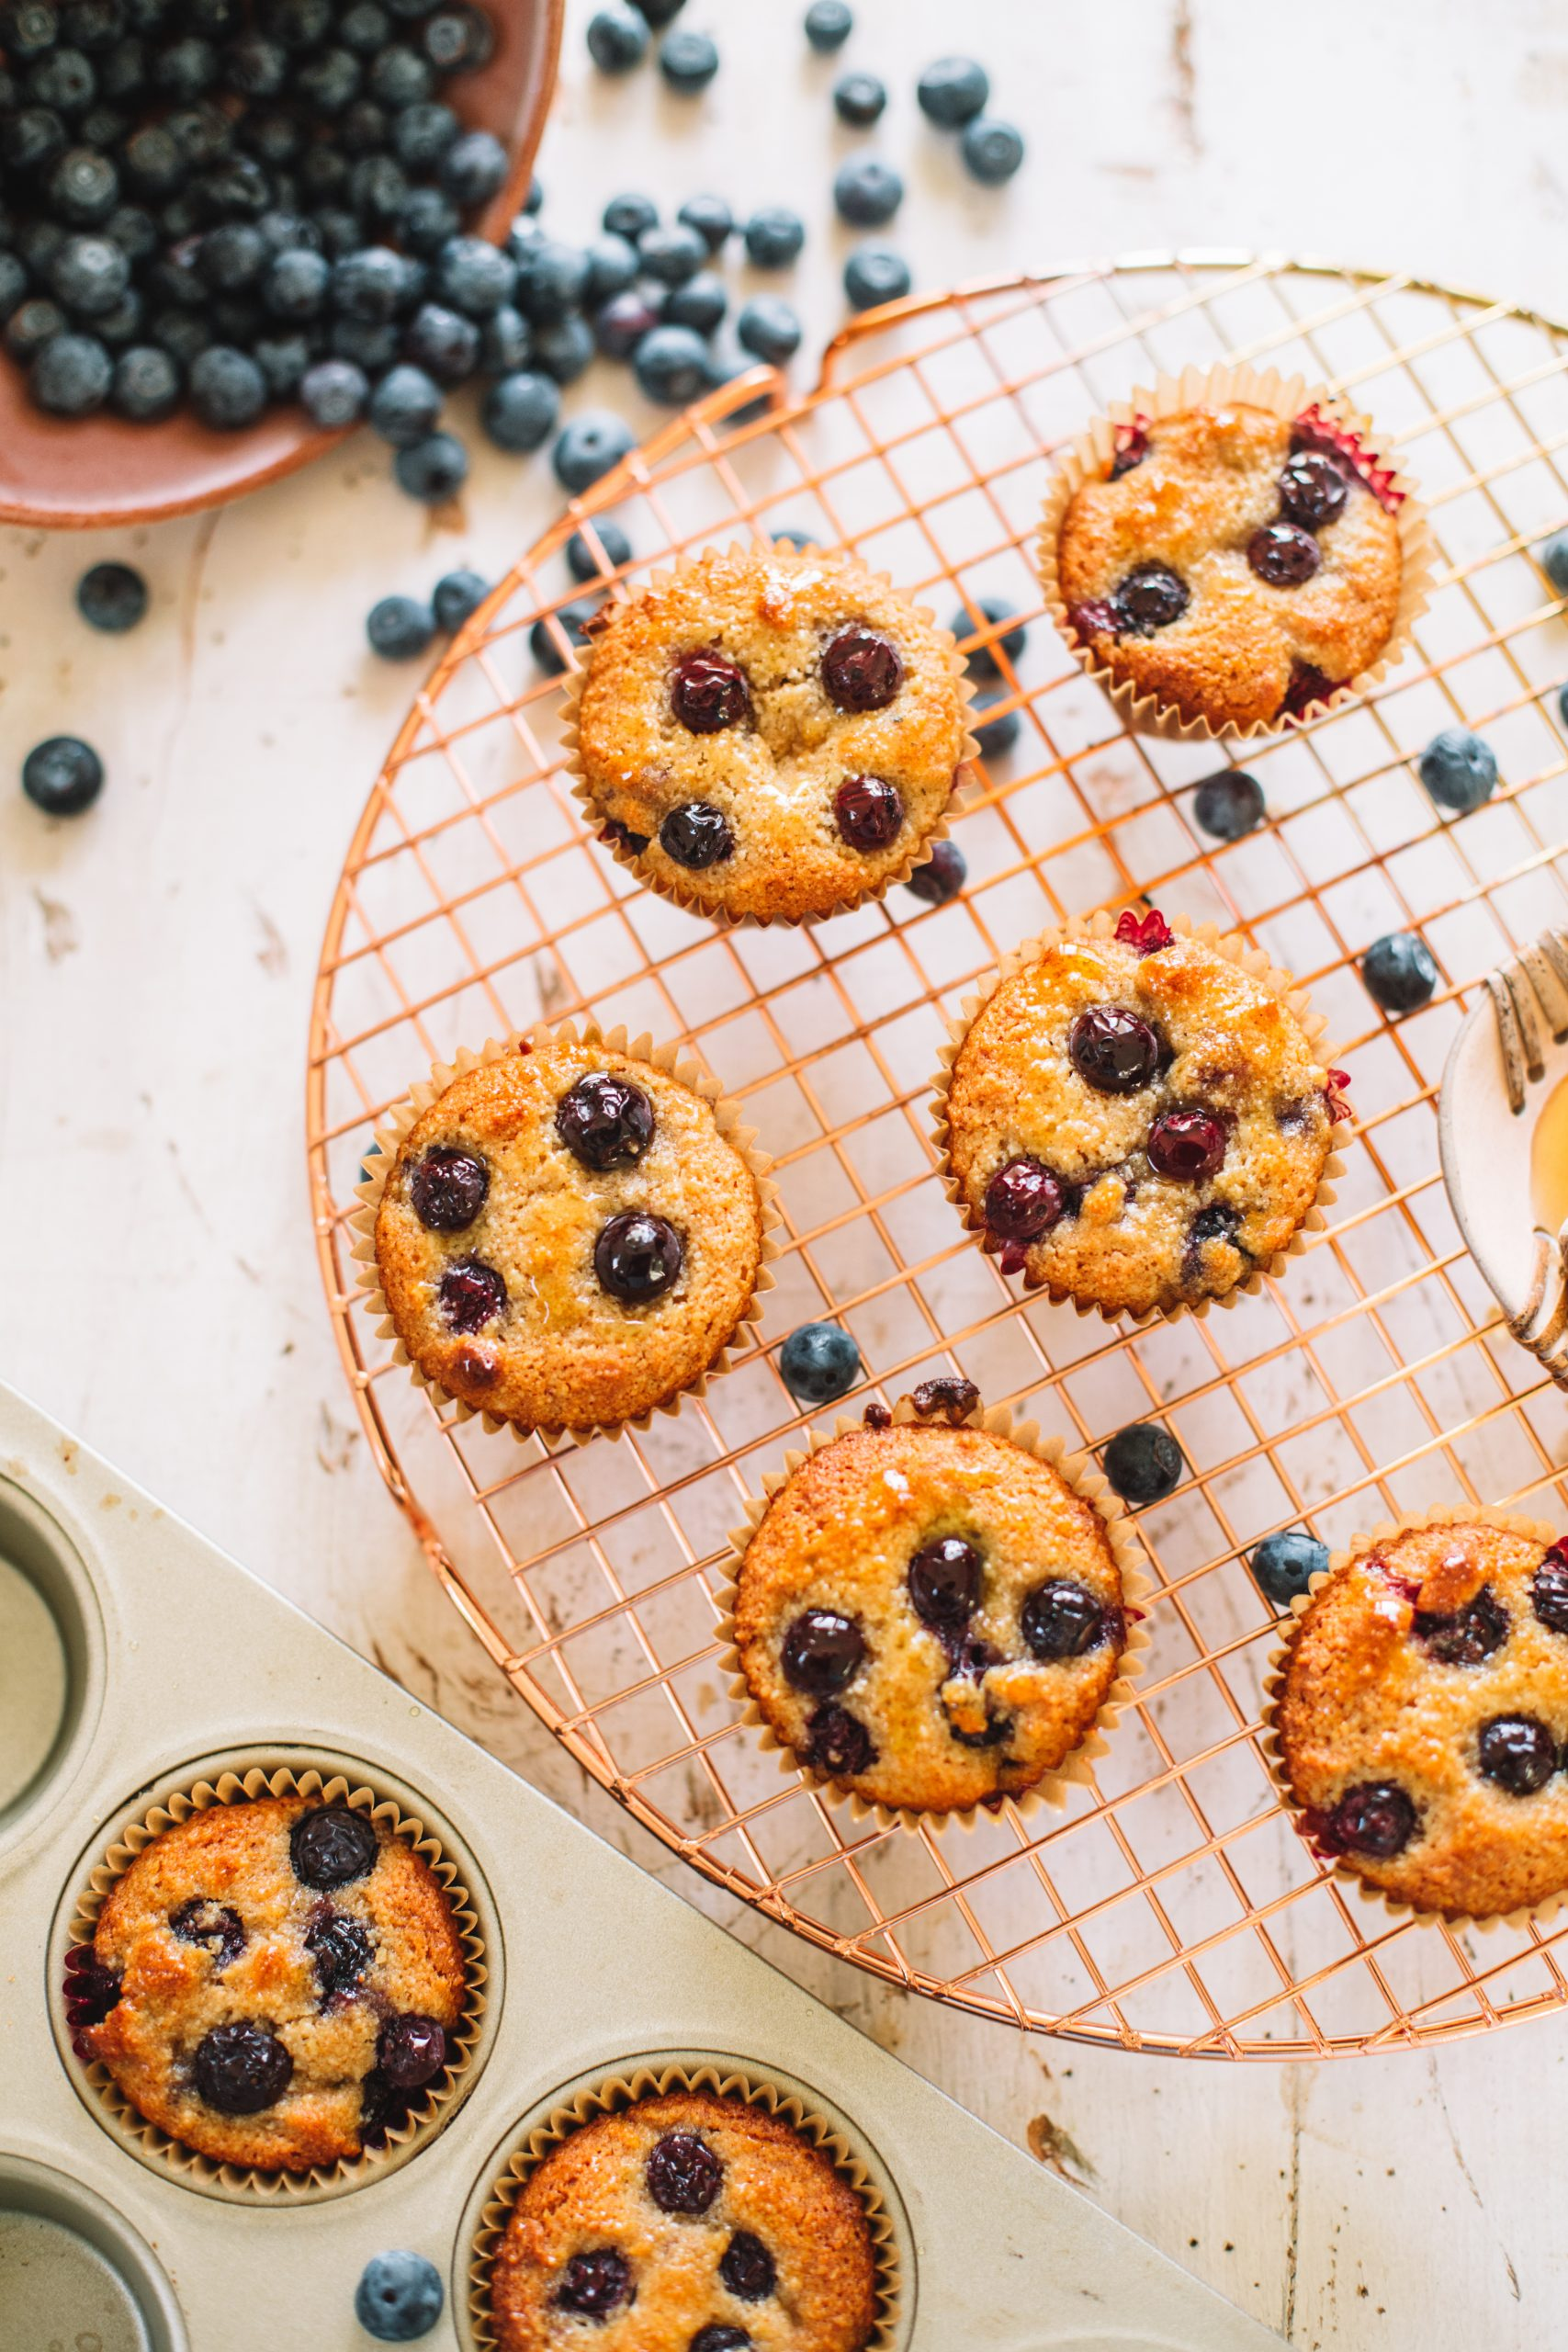 Baked blueberry muffins cooling on a copper cooling rack.